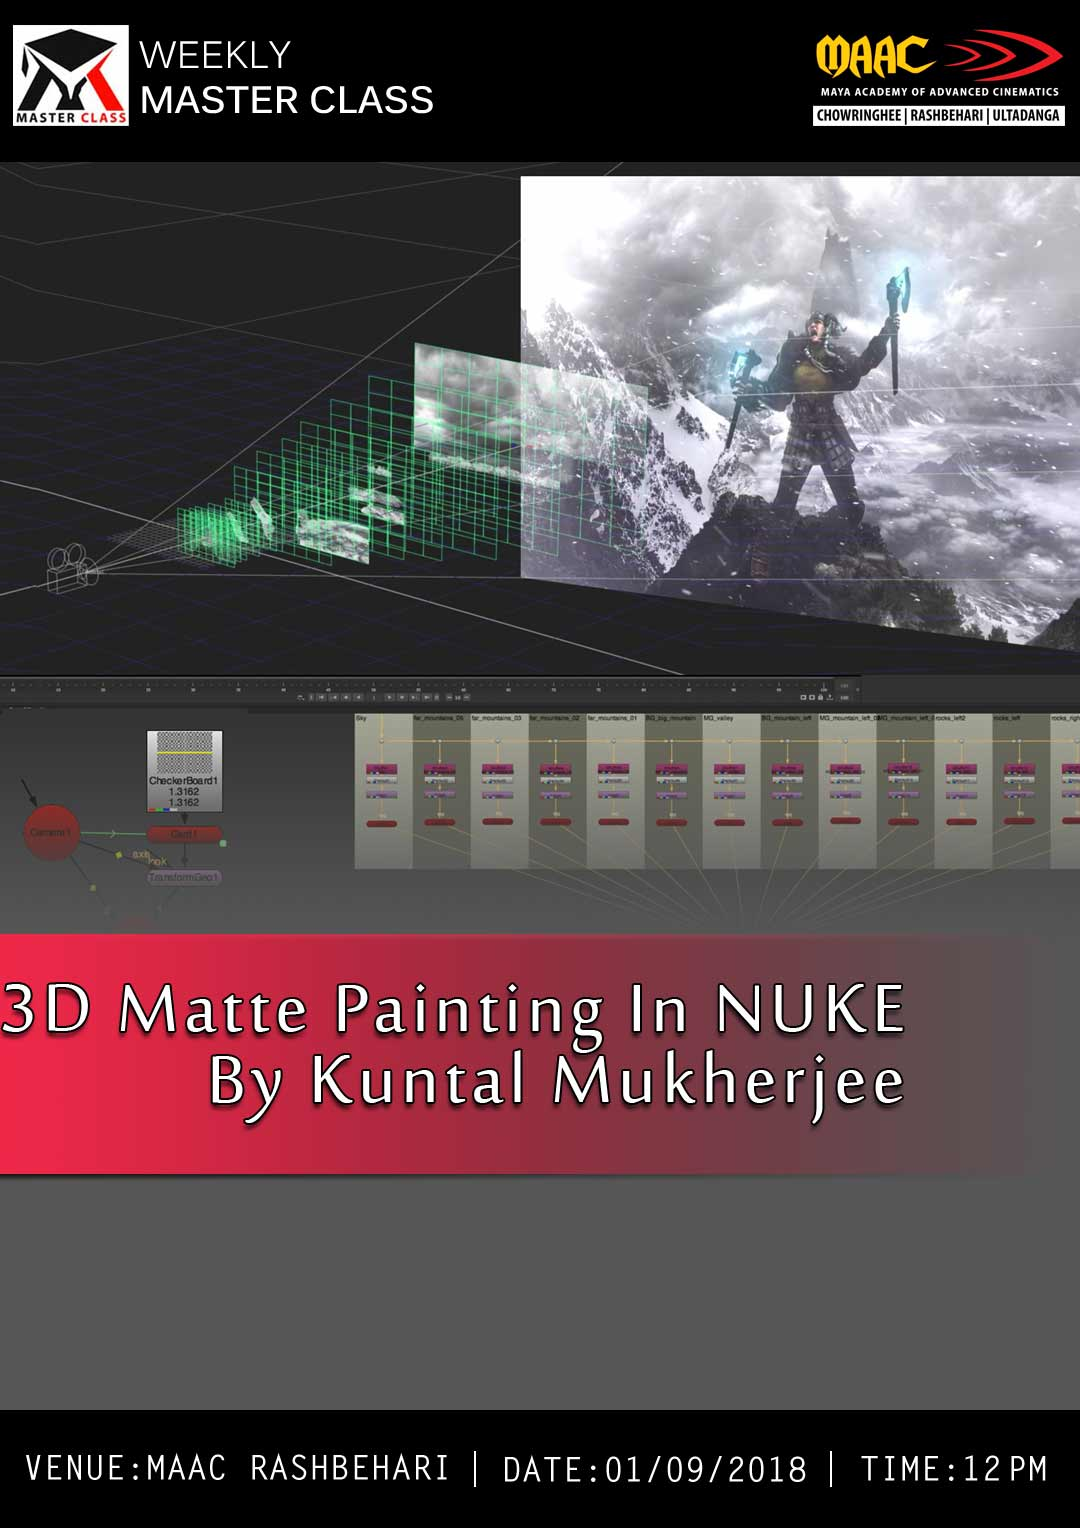 Weekly Master Class on 3D Matte Painting in Nuke